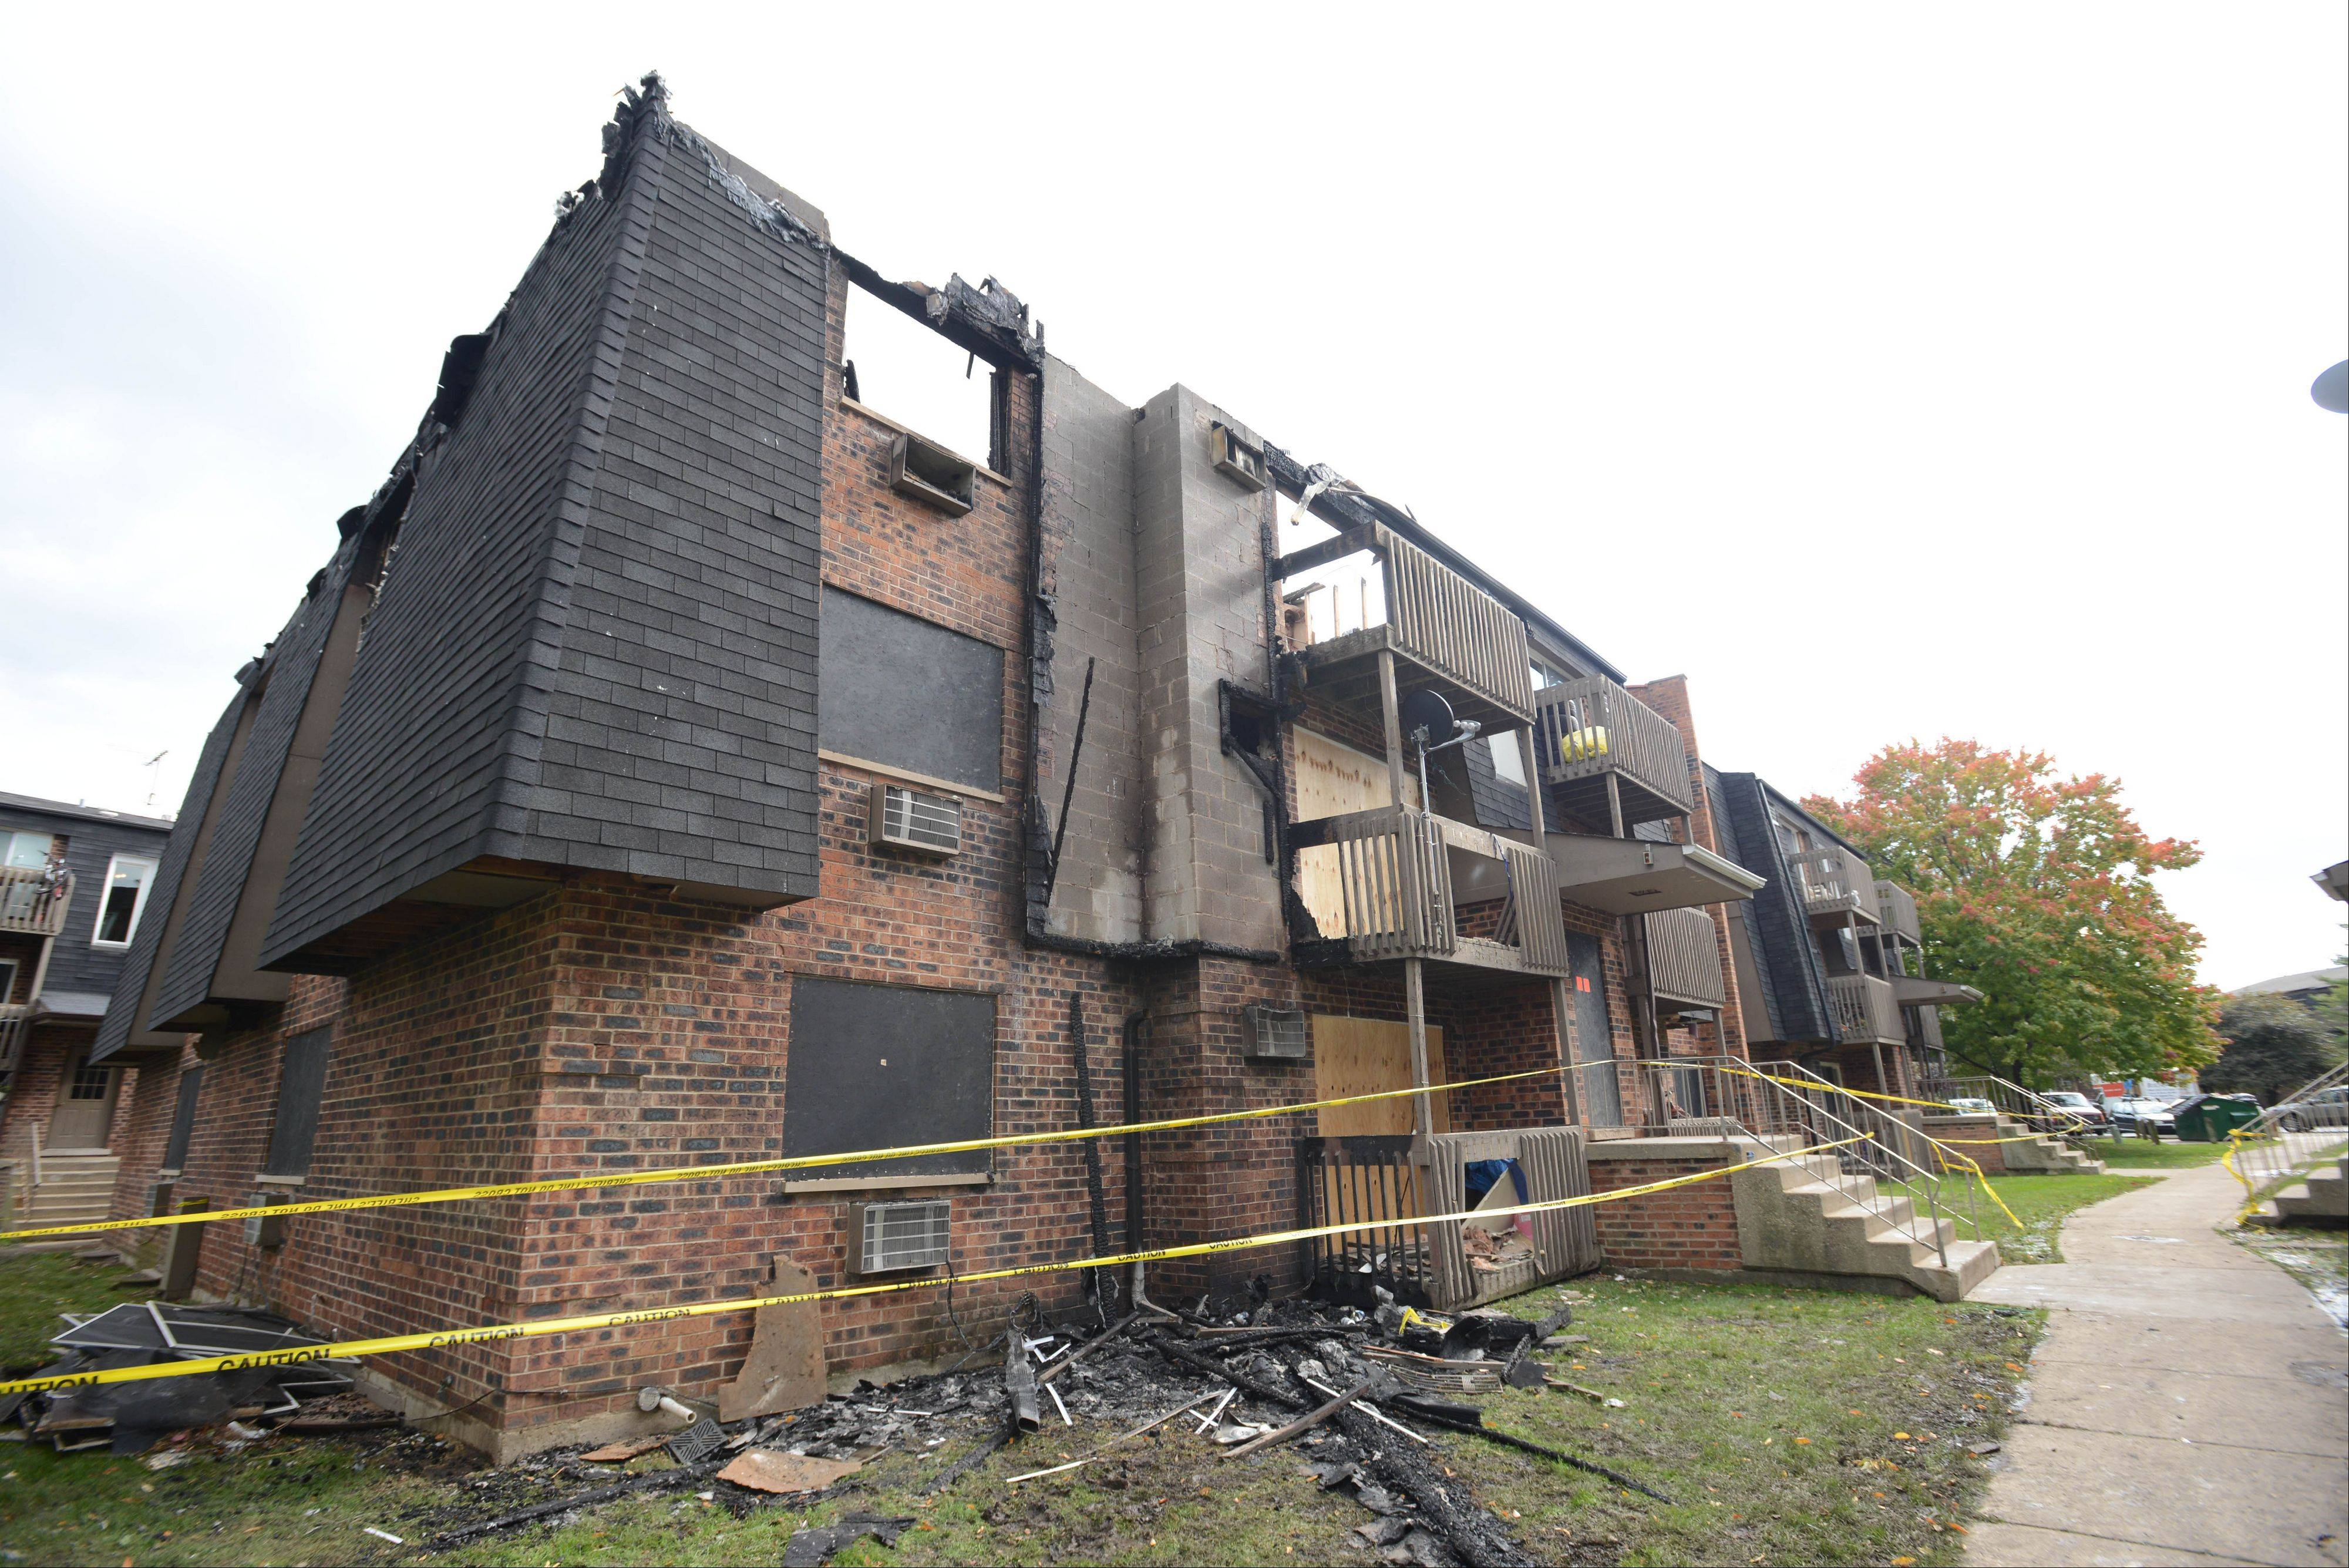 Families are homeless after a fire broke out at a DuPage County apartment complex Saturday night. The fire was at building 580 in the Willow Lakes complex, 2100 Lynn Road near Glen Ellyn.